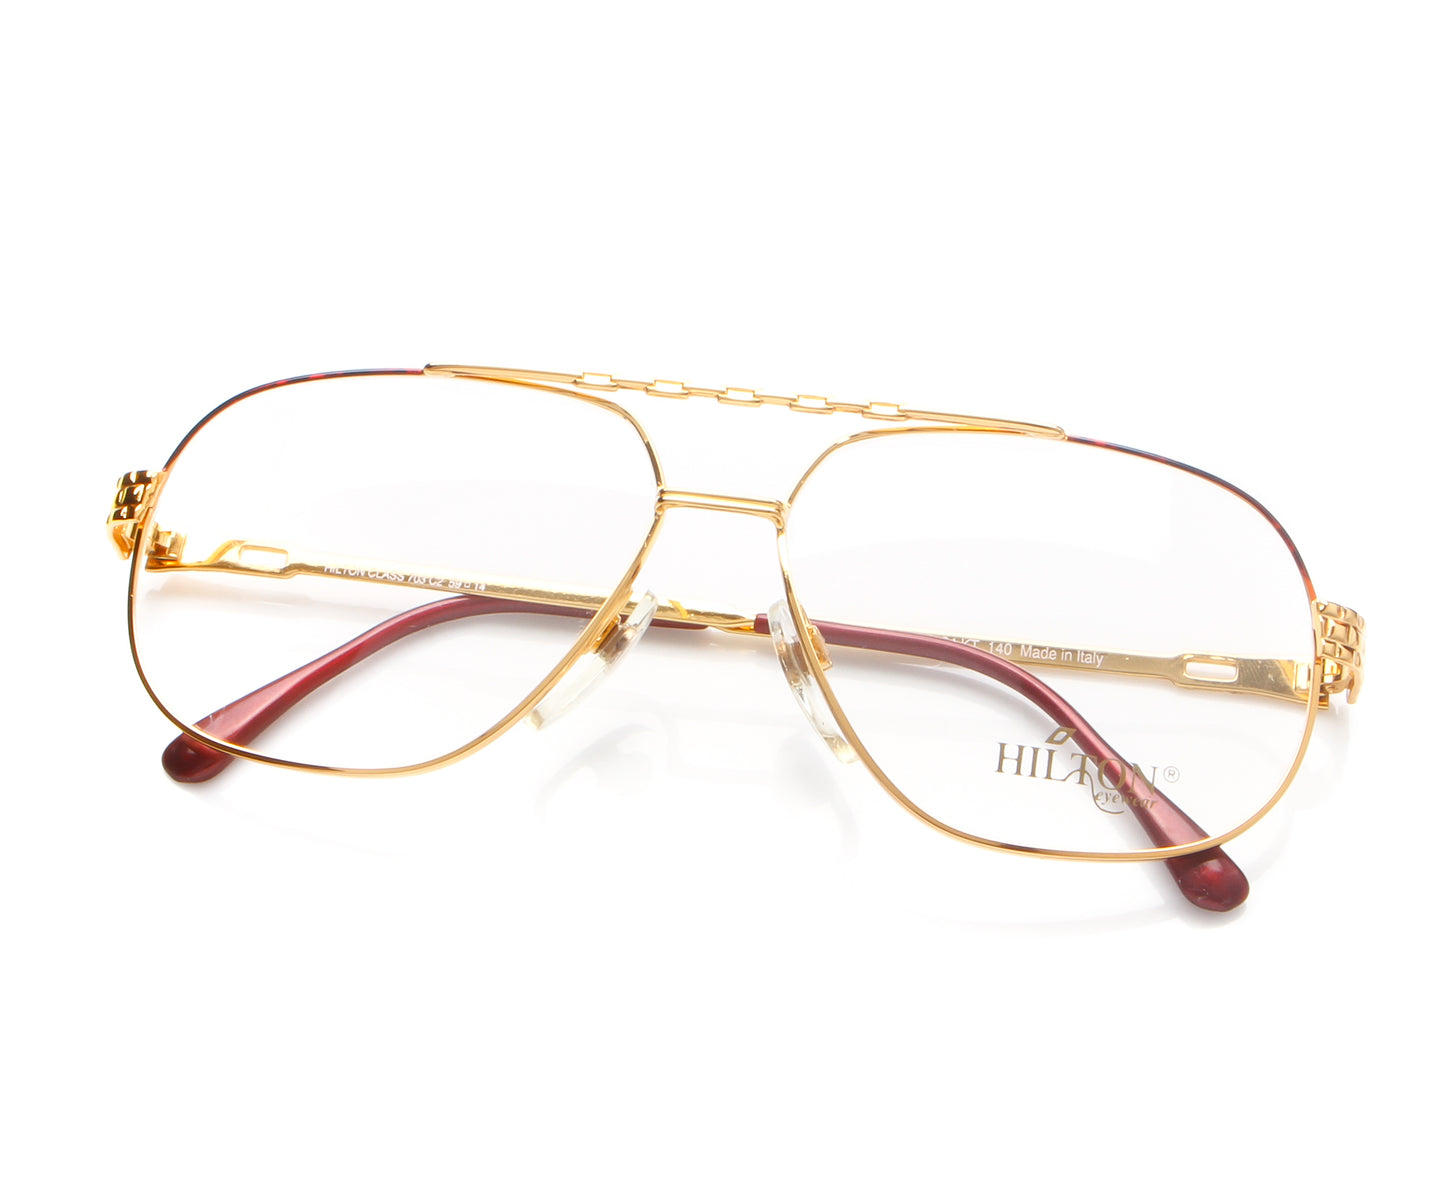 Vintage Hilton Class 703 2 24KT Thumb, Hilton , glasses frames, eyeglasses online, eyeglass frames, mens glasses, womens glasses, buy glasses online, designer eyeglasses, vintage sunglasses, retro sunglasses, vintage glasses, sunglass, eyeglass, glasses, lens, vintage frames company, vf